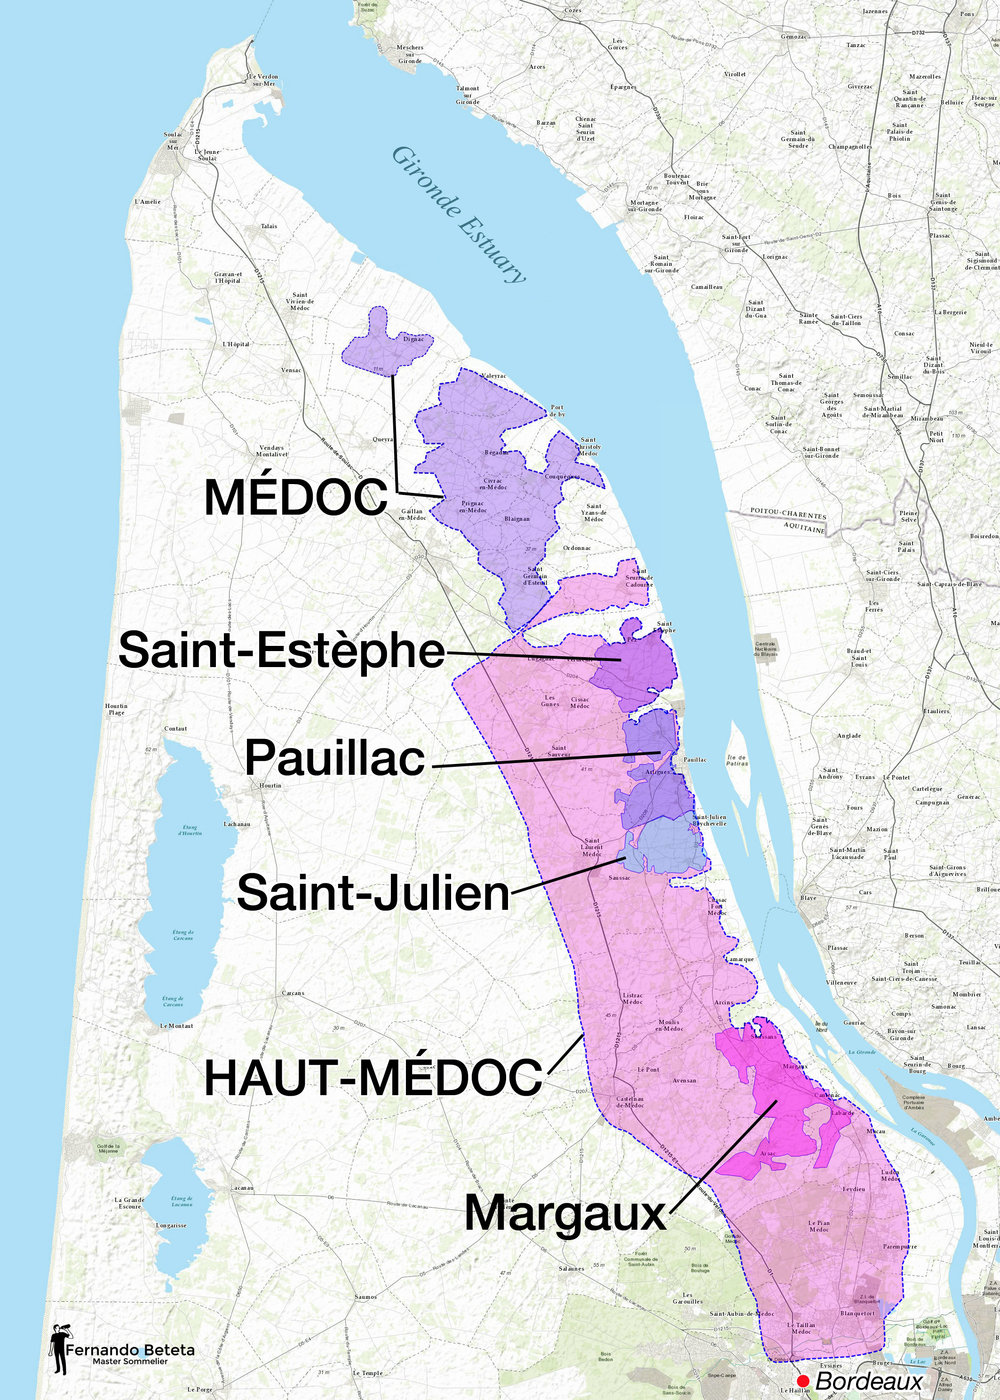 France - Bordeaux Médoc